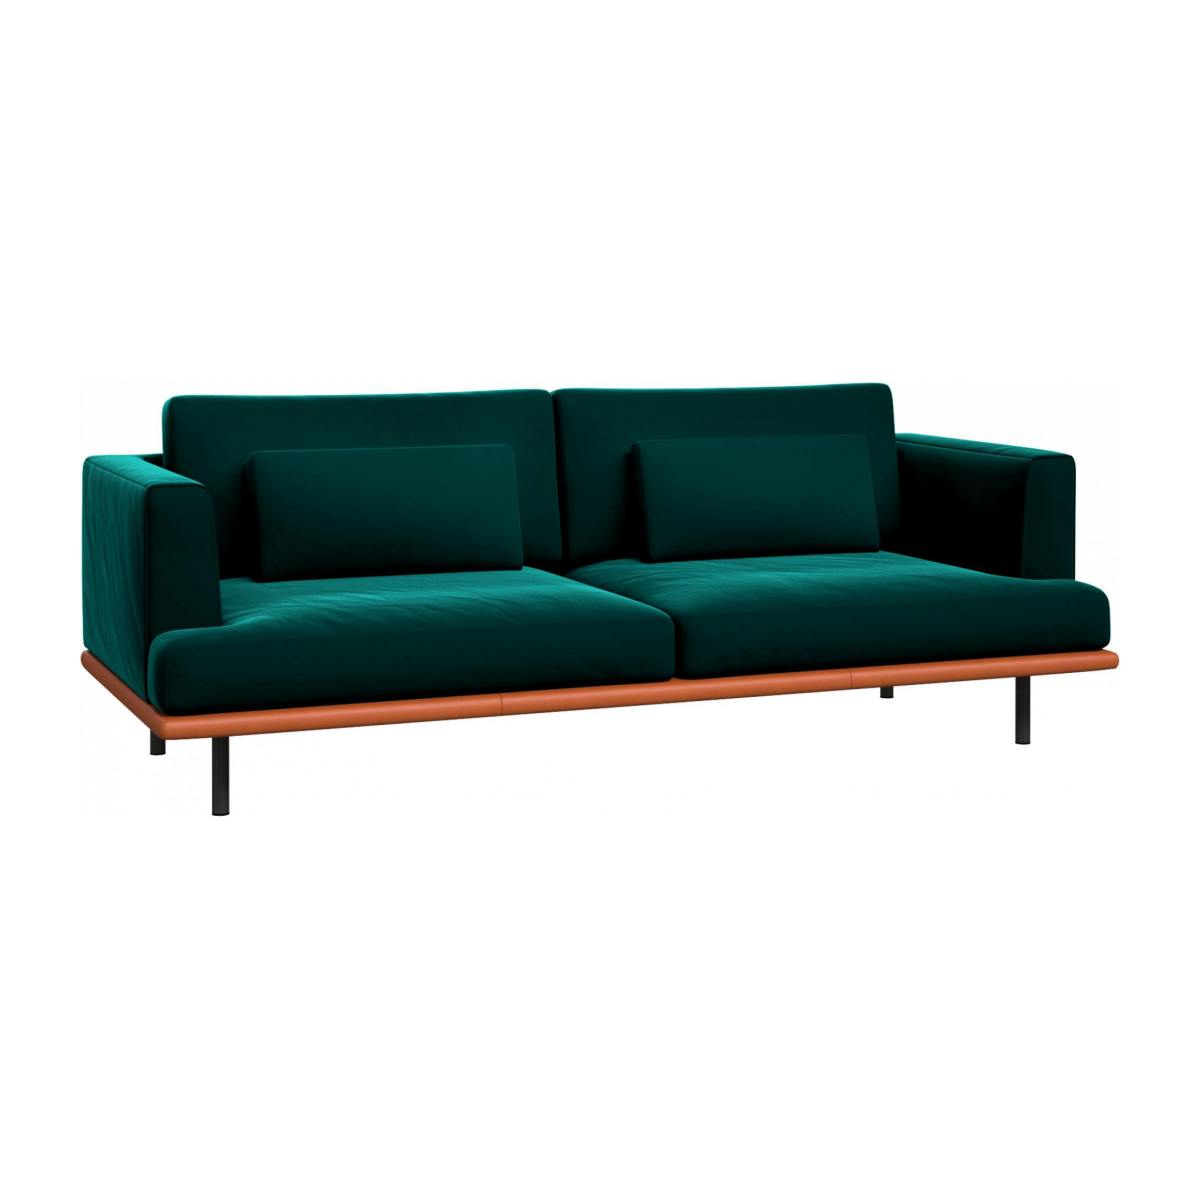 3 seater sofa in Super Velvet fabric, petrol blue with base in brown leather n°3